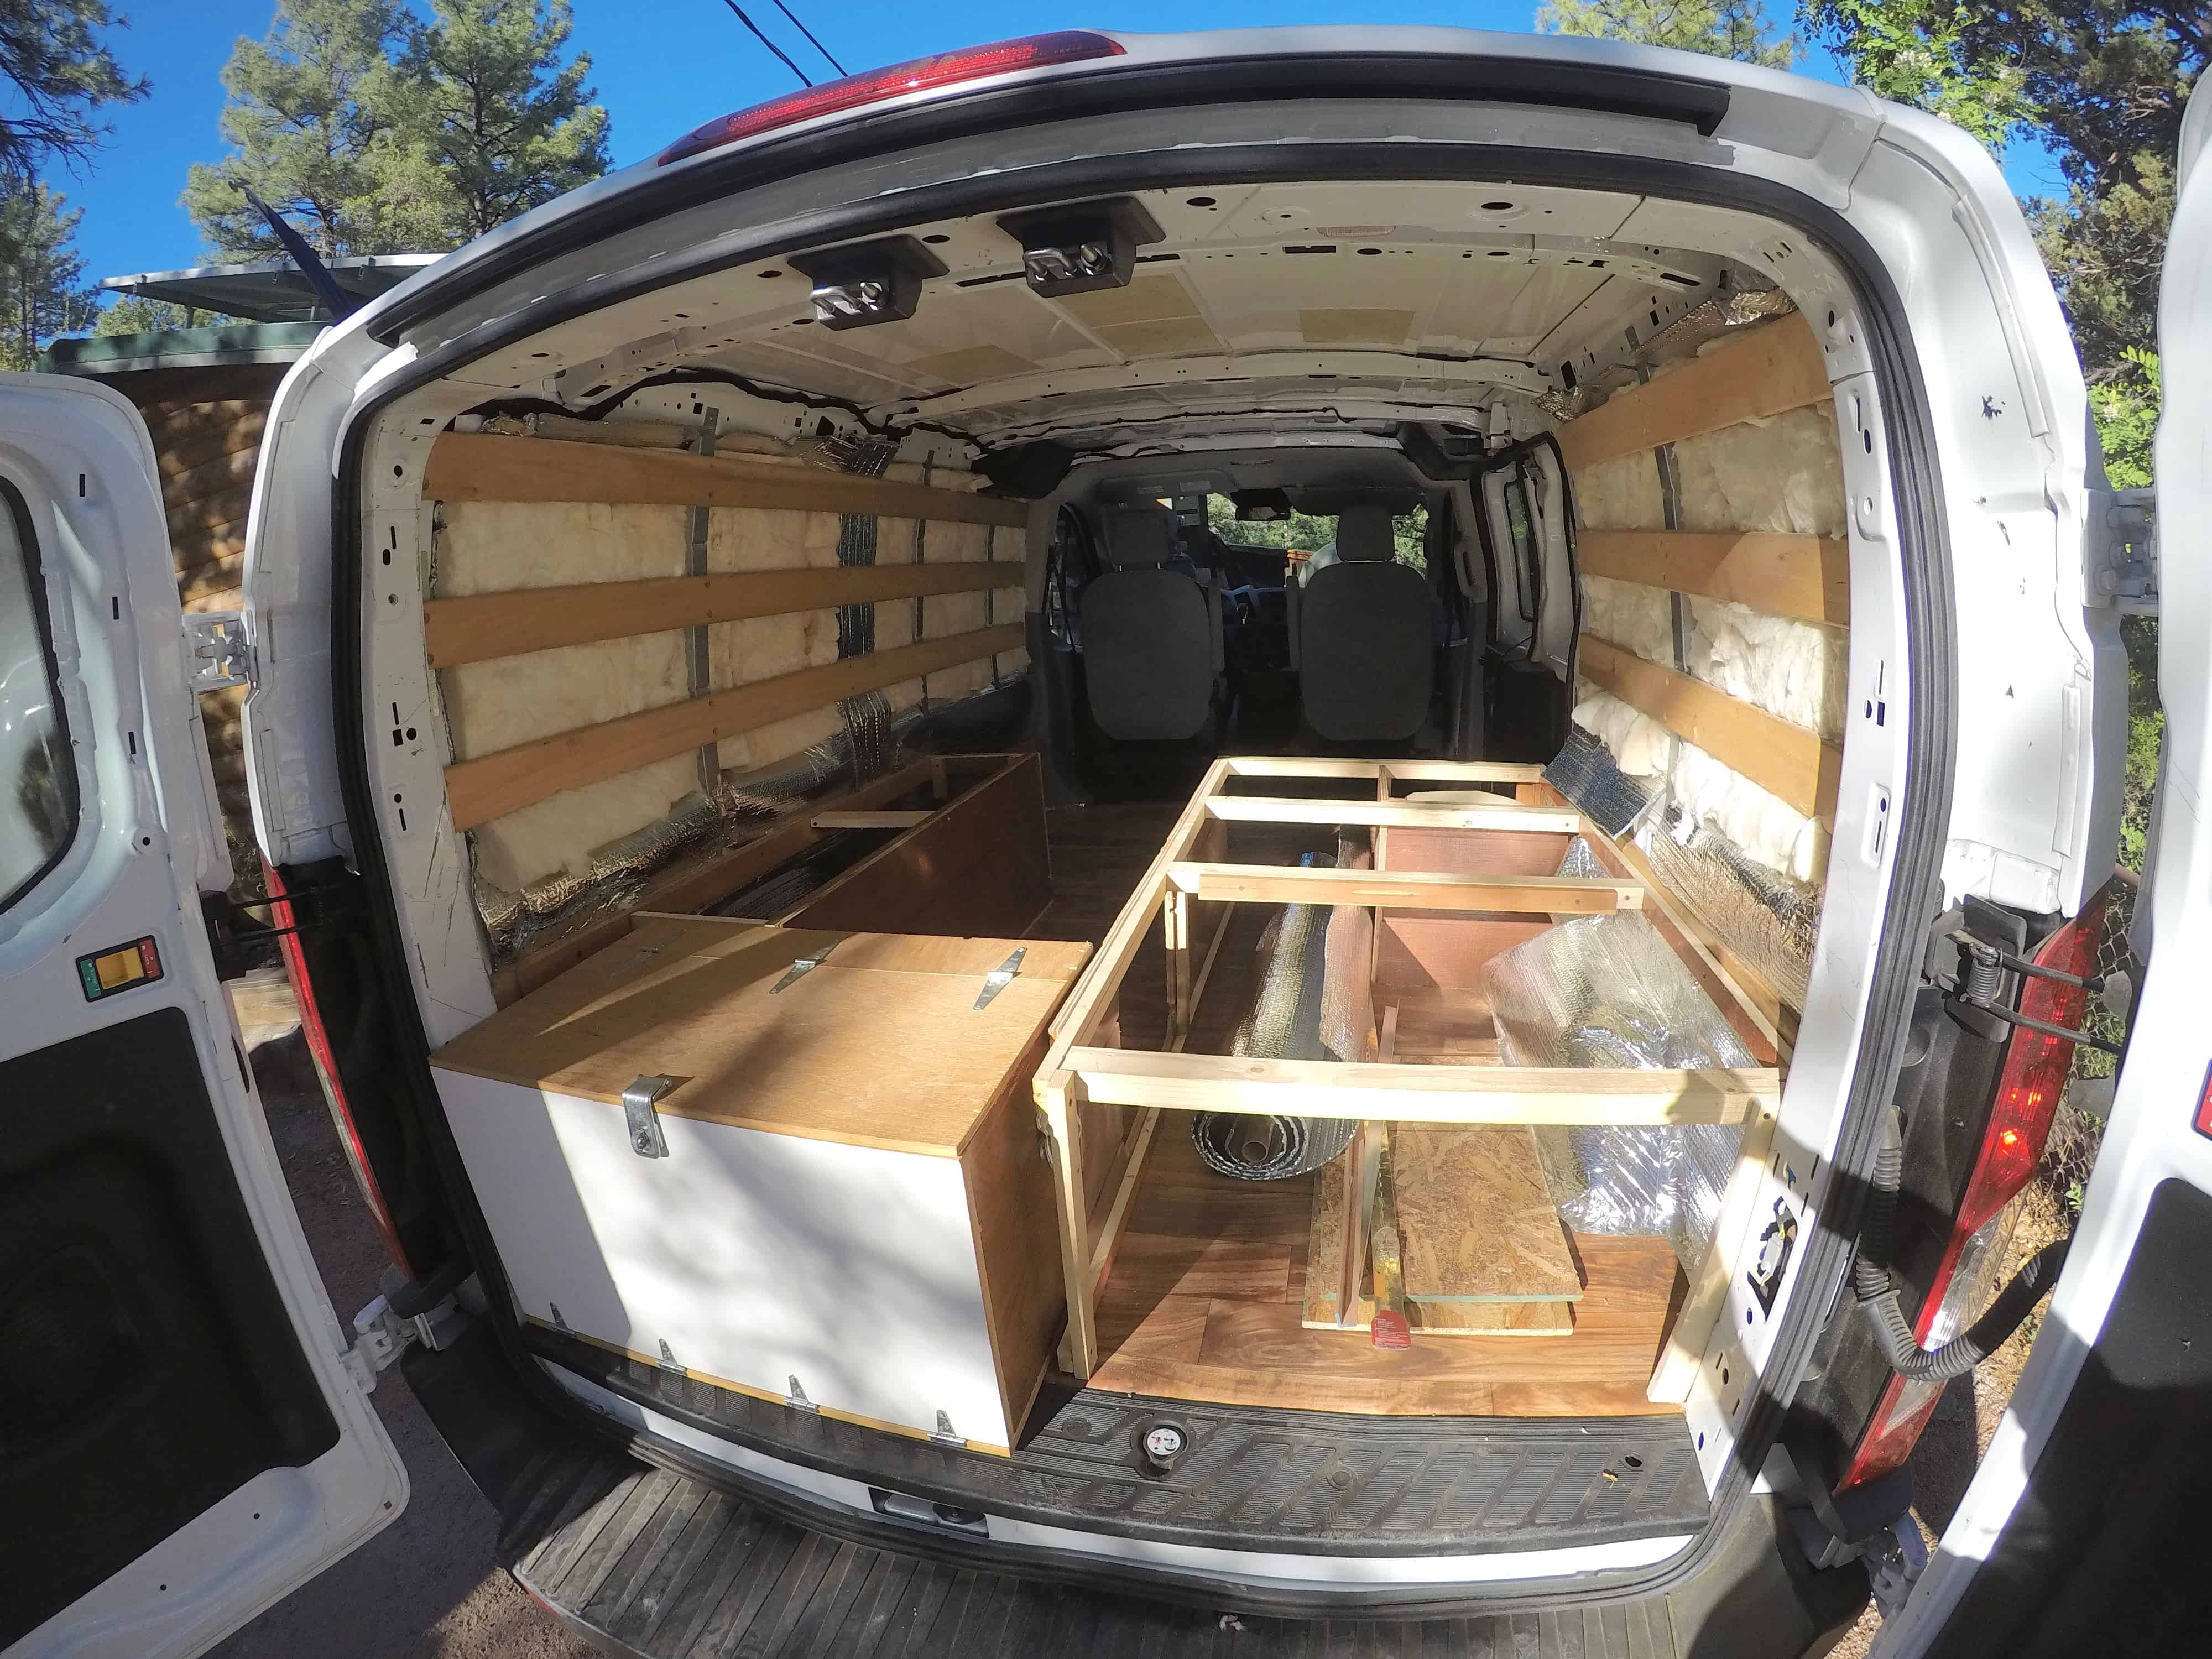 Chevy Express Camper Van Build ✓ All About Chevrolet